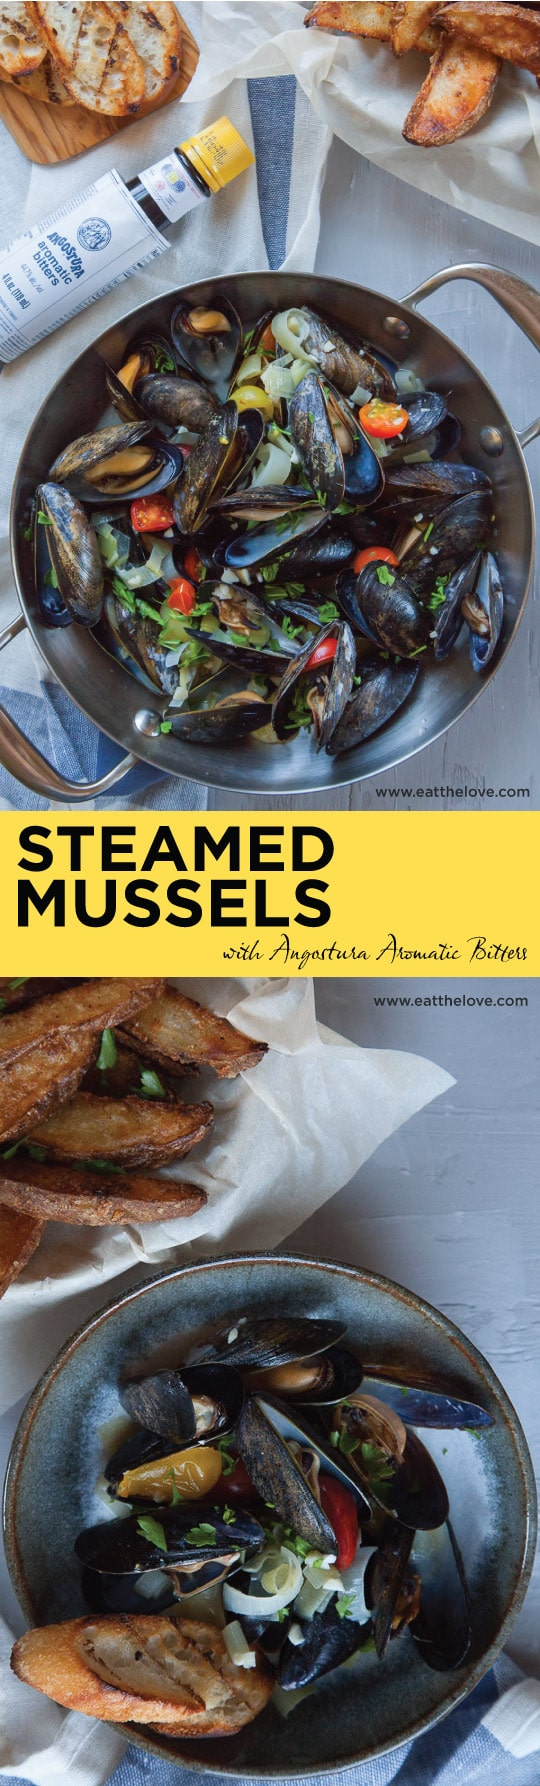 Easy and Fast Steamed Mussels with Angostura Bitters. Photo and recipe by Irvin Lin of Eat the Love.